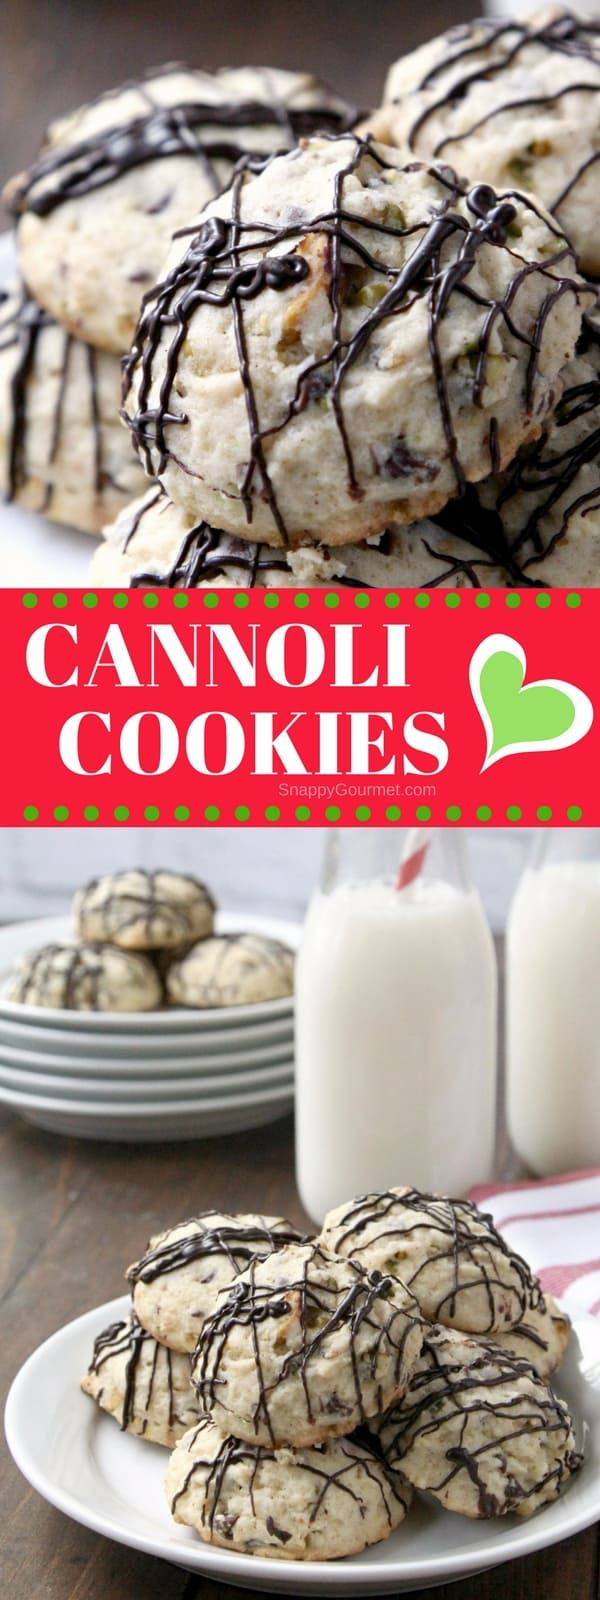 Cannoli Cookies - easy Italian Christmas Cookie with pistachios, chocolate, ricotta, and orange zest. SnappyGourmet.com #Cookies #Italian #Christmas #SnappyGourmet via @snappygourmet